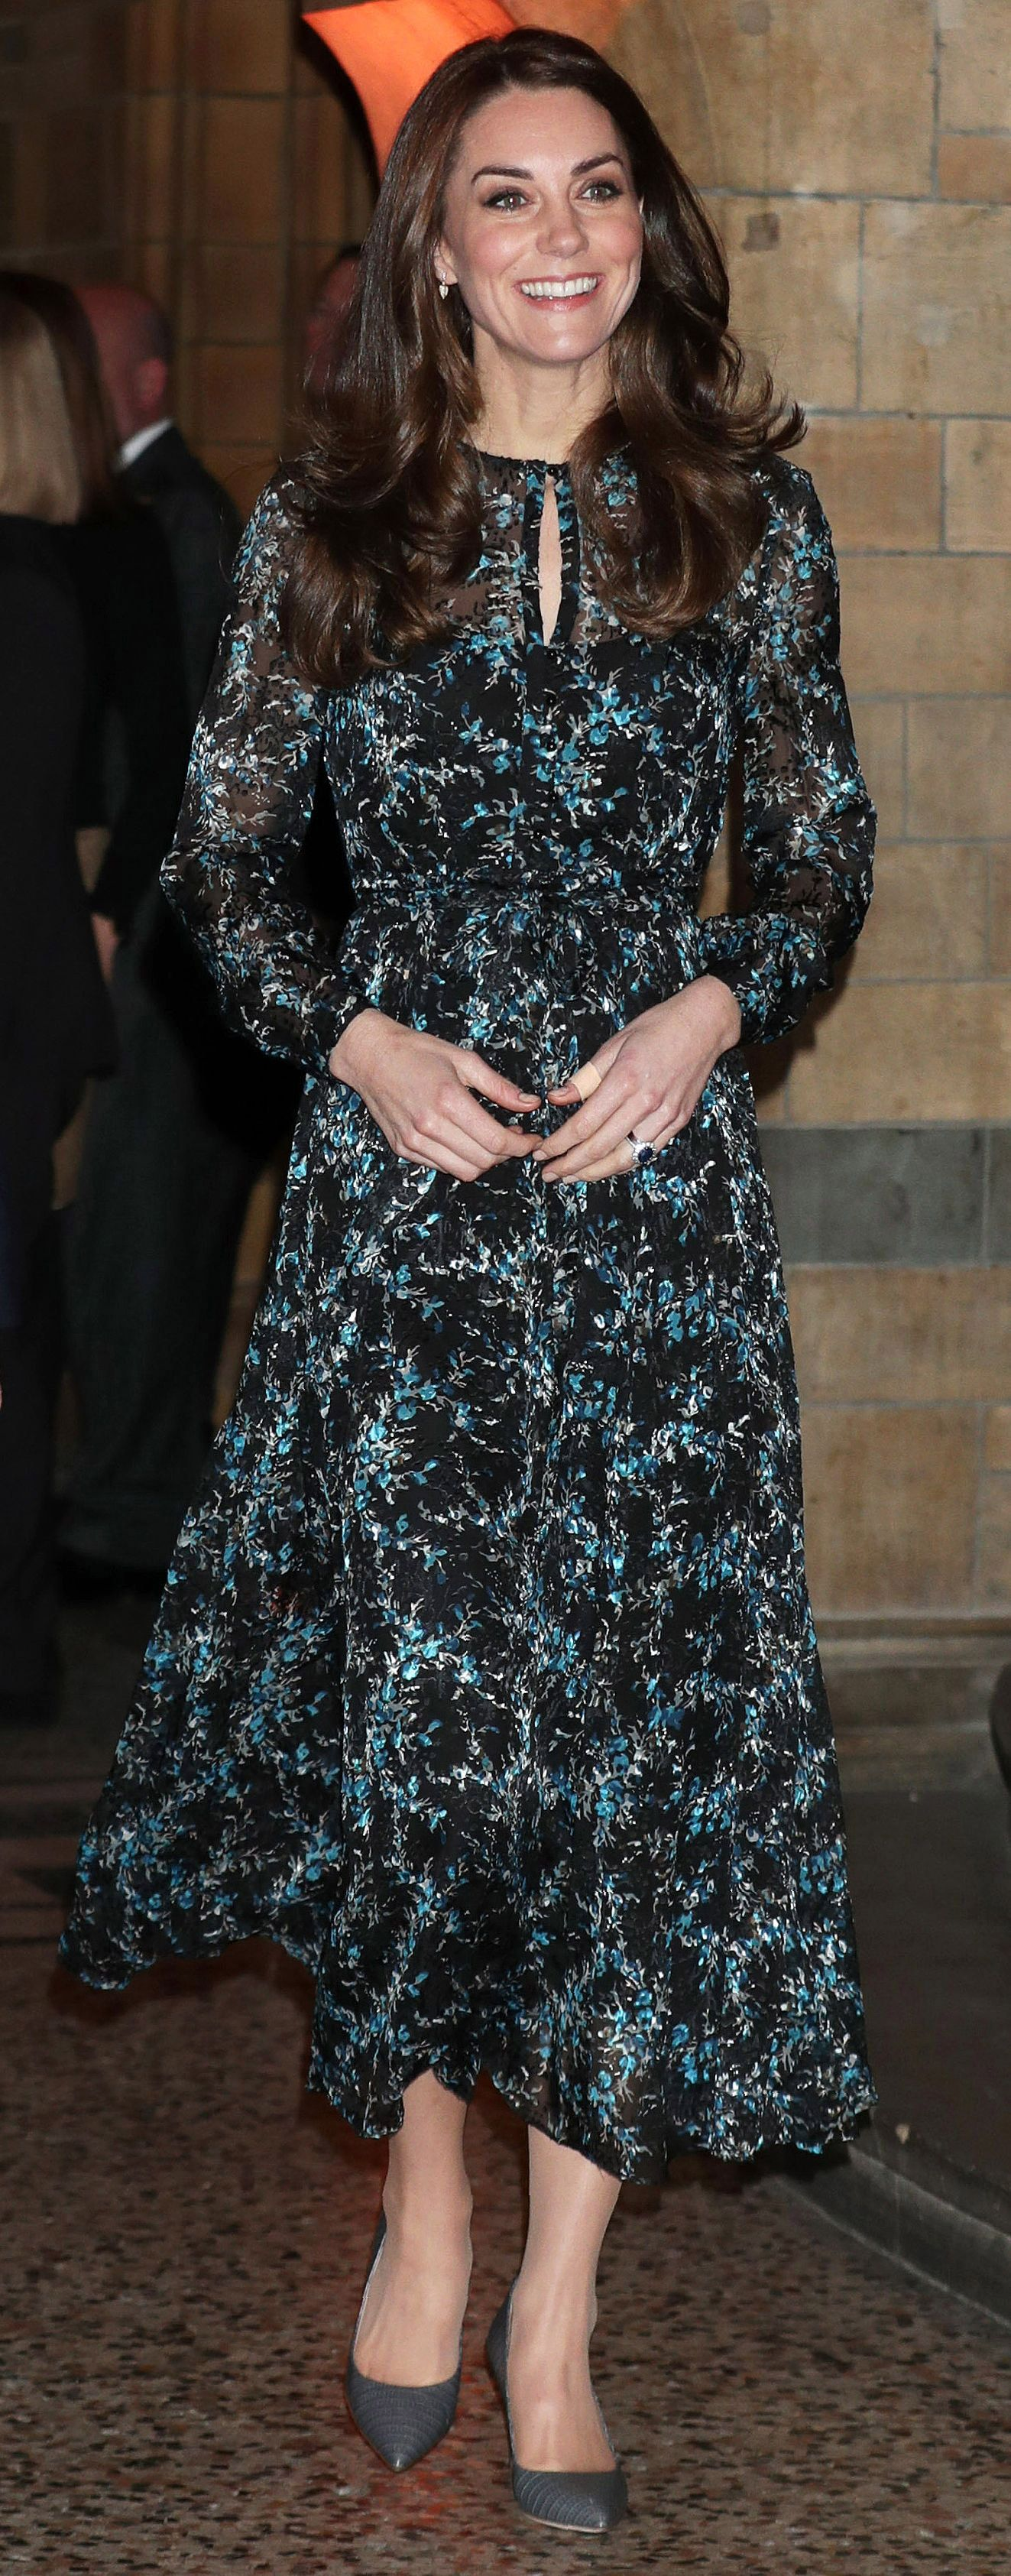 Kate Middleton's Best Style Moments  The Duchess Of Cambridge's Most  Fashionable Outfits